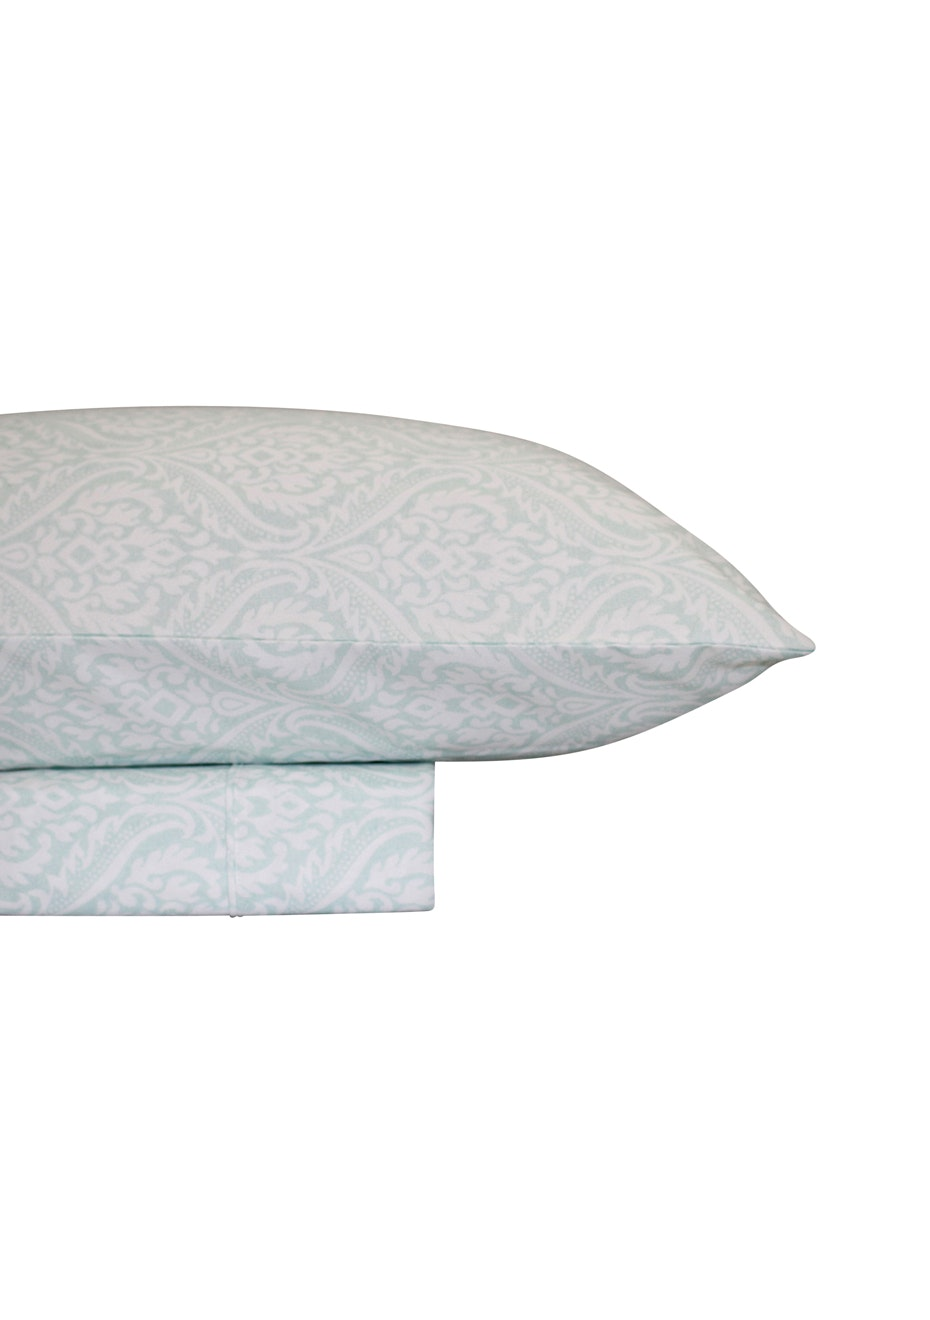 Thermal Flannel Sheet Sets - Haven Design - Ice - Single Bed